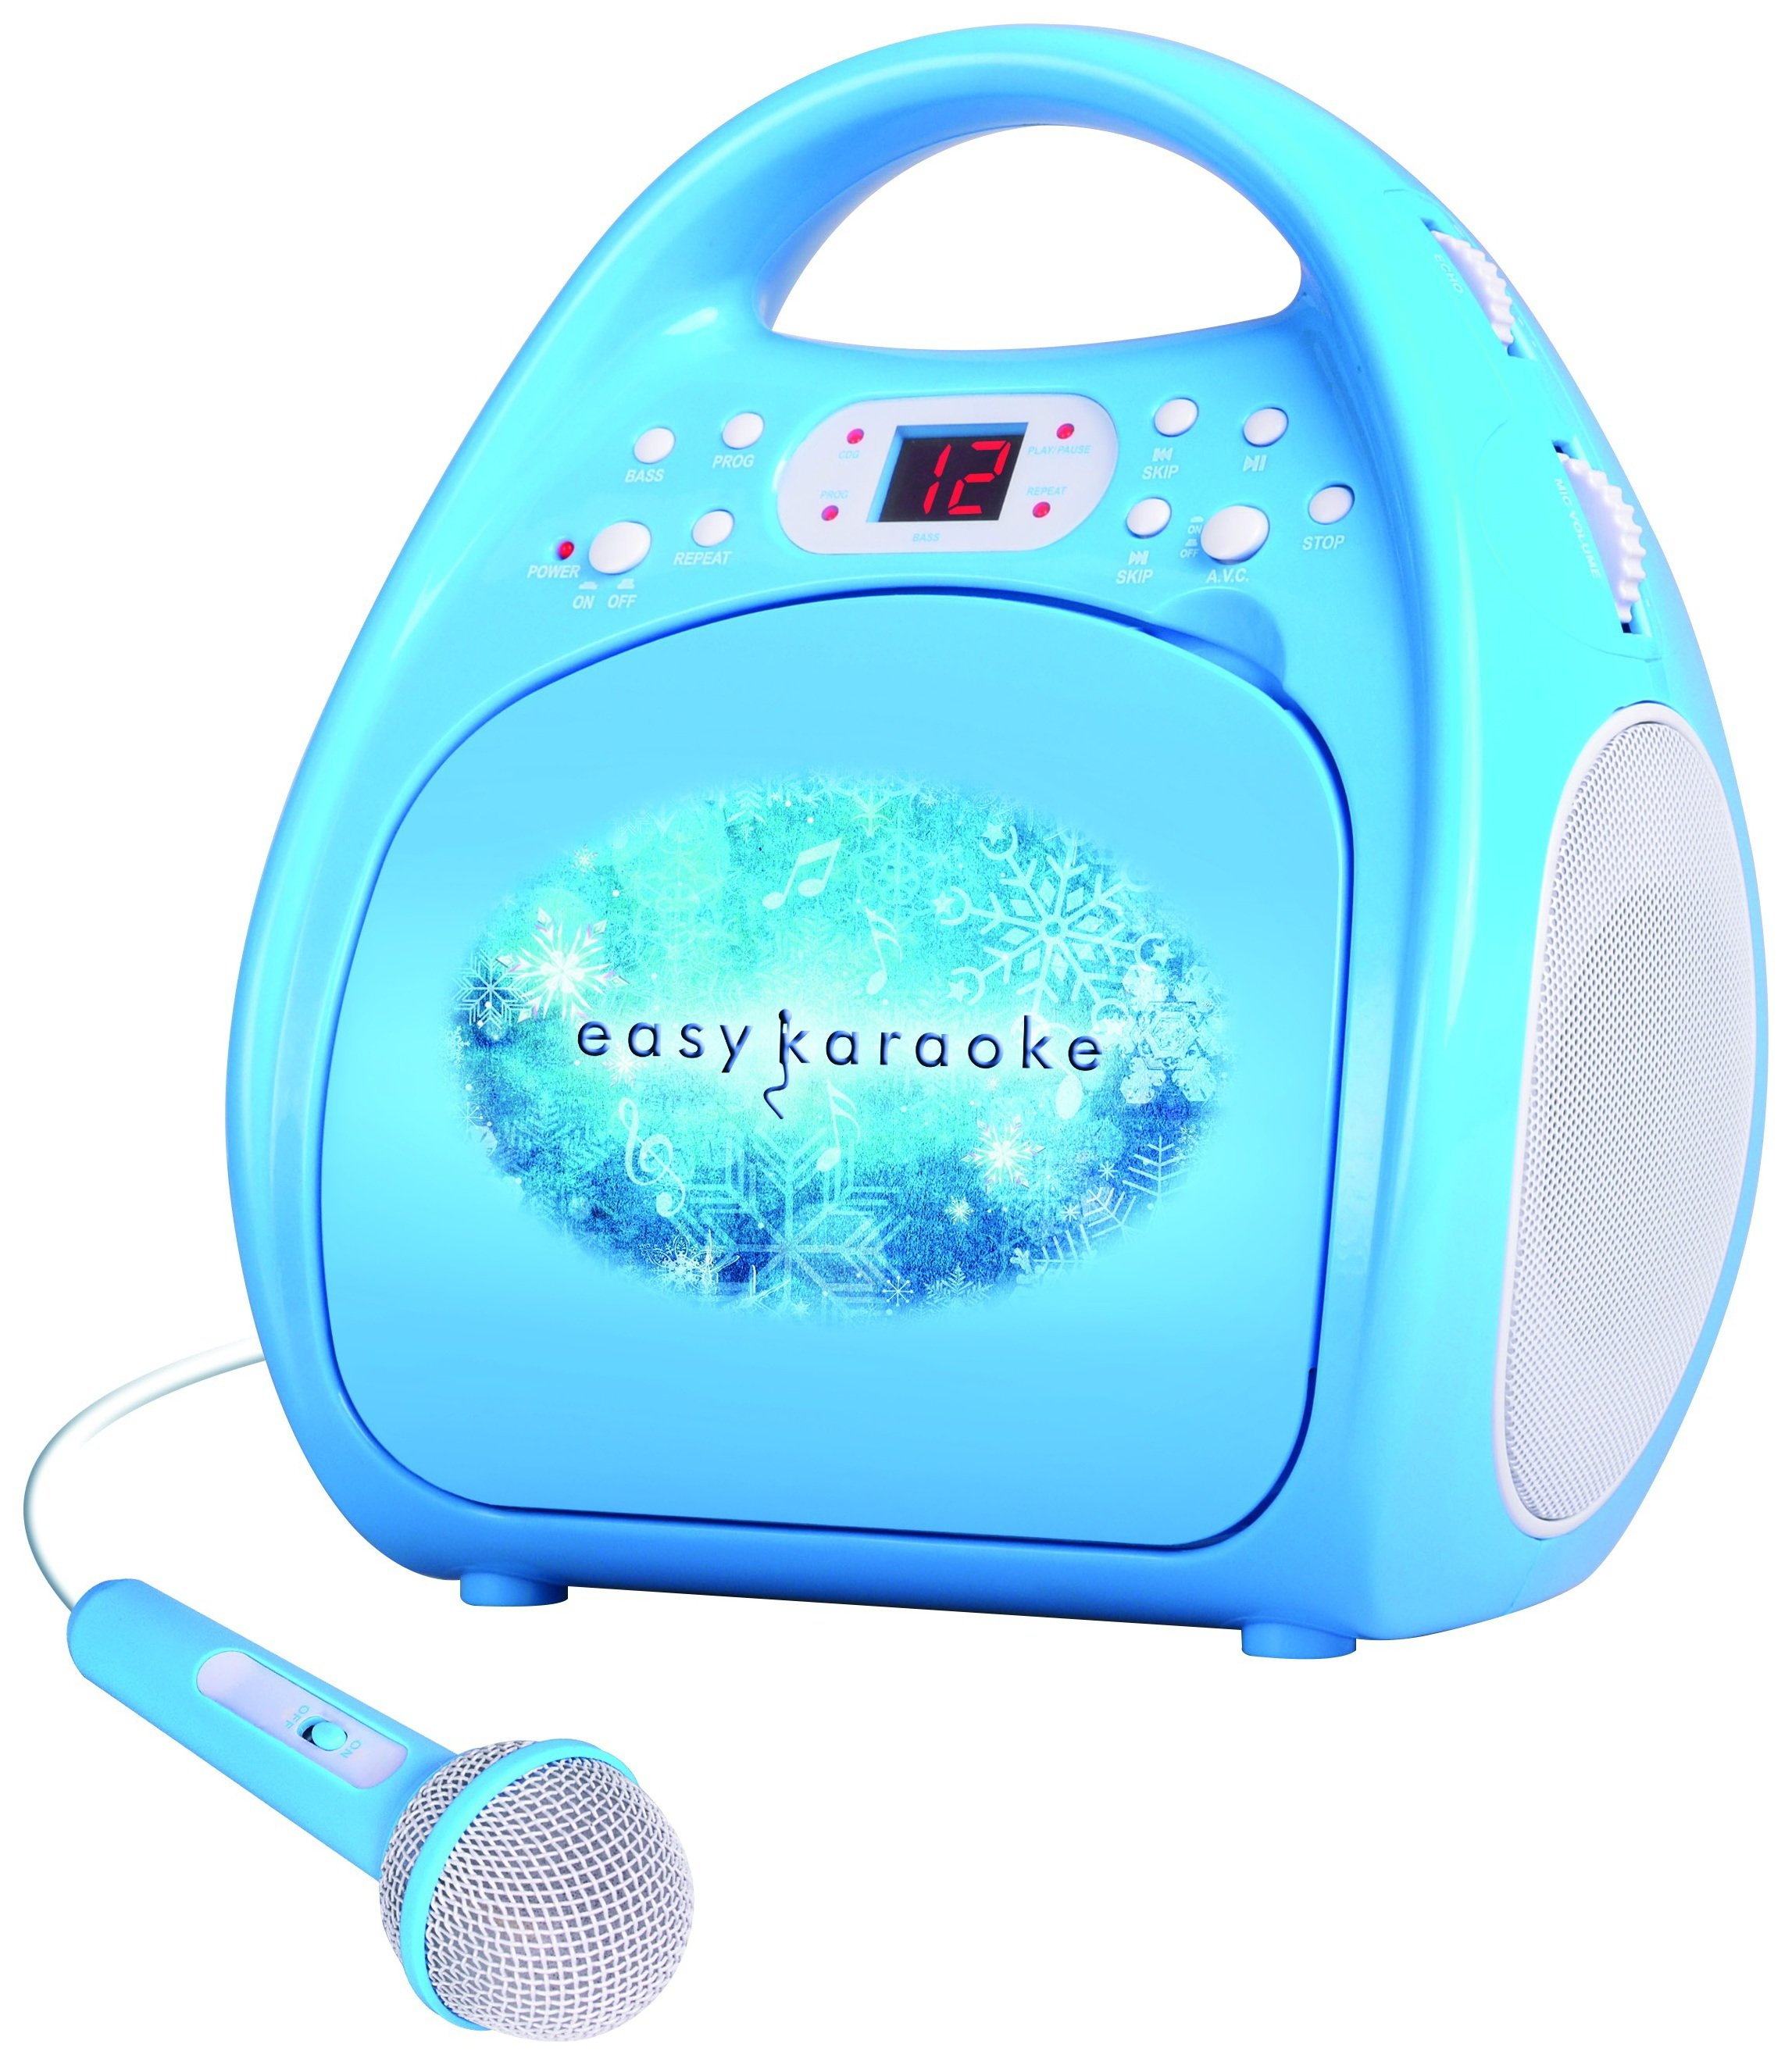 Image of Easy Karaoke EKS-123 Karaoke Boom Box.